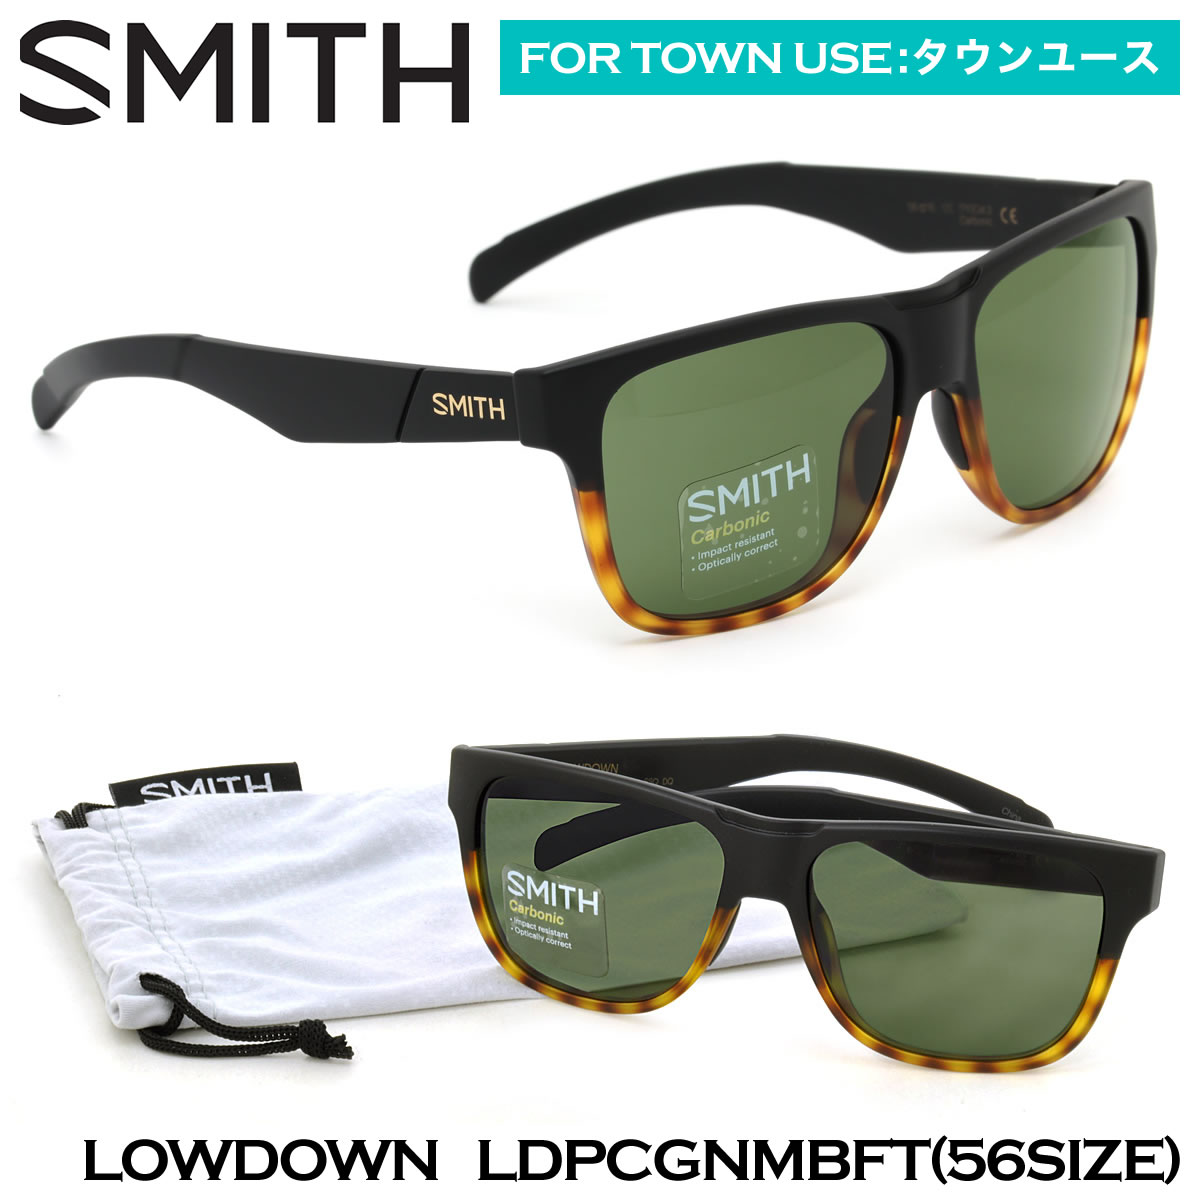 0b645217c2 (Smith Optics) LOWDOWN sunglasses LDPCGNMBFT 56 size Wellington  polycarbonate lens sticker Smith Optics SMITH OPTICS smith optics lodown  men s women s